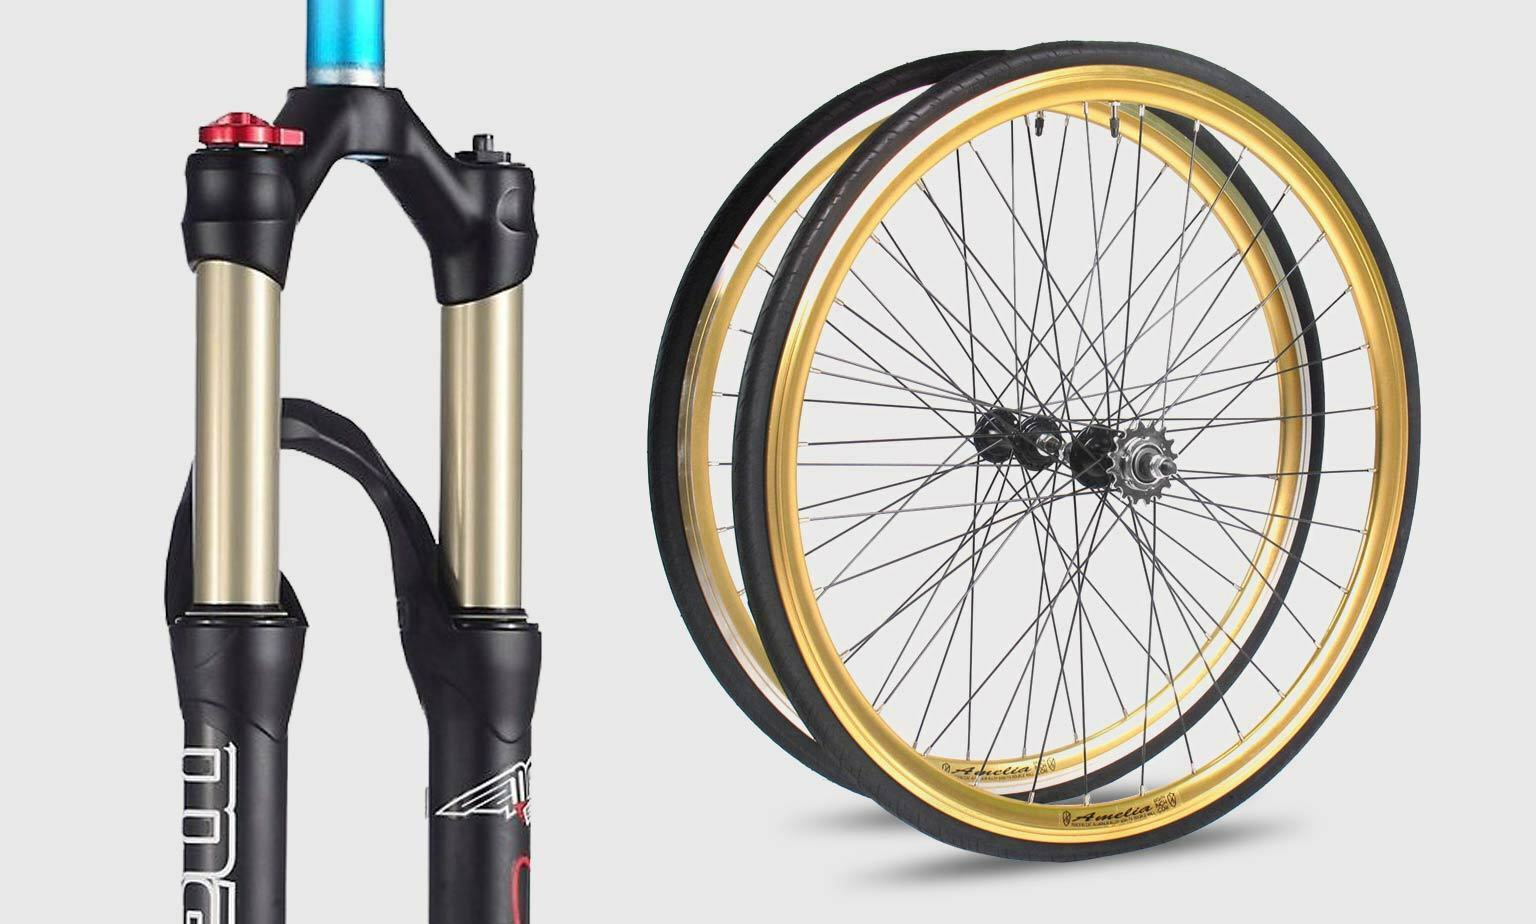 Bike Parts & Components up to 50% off